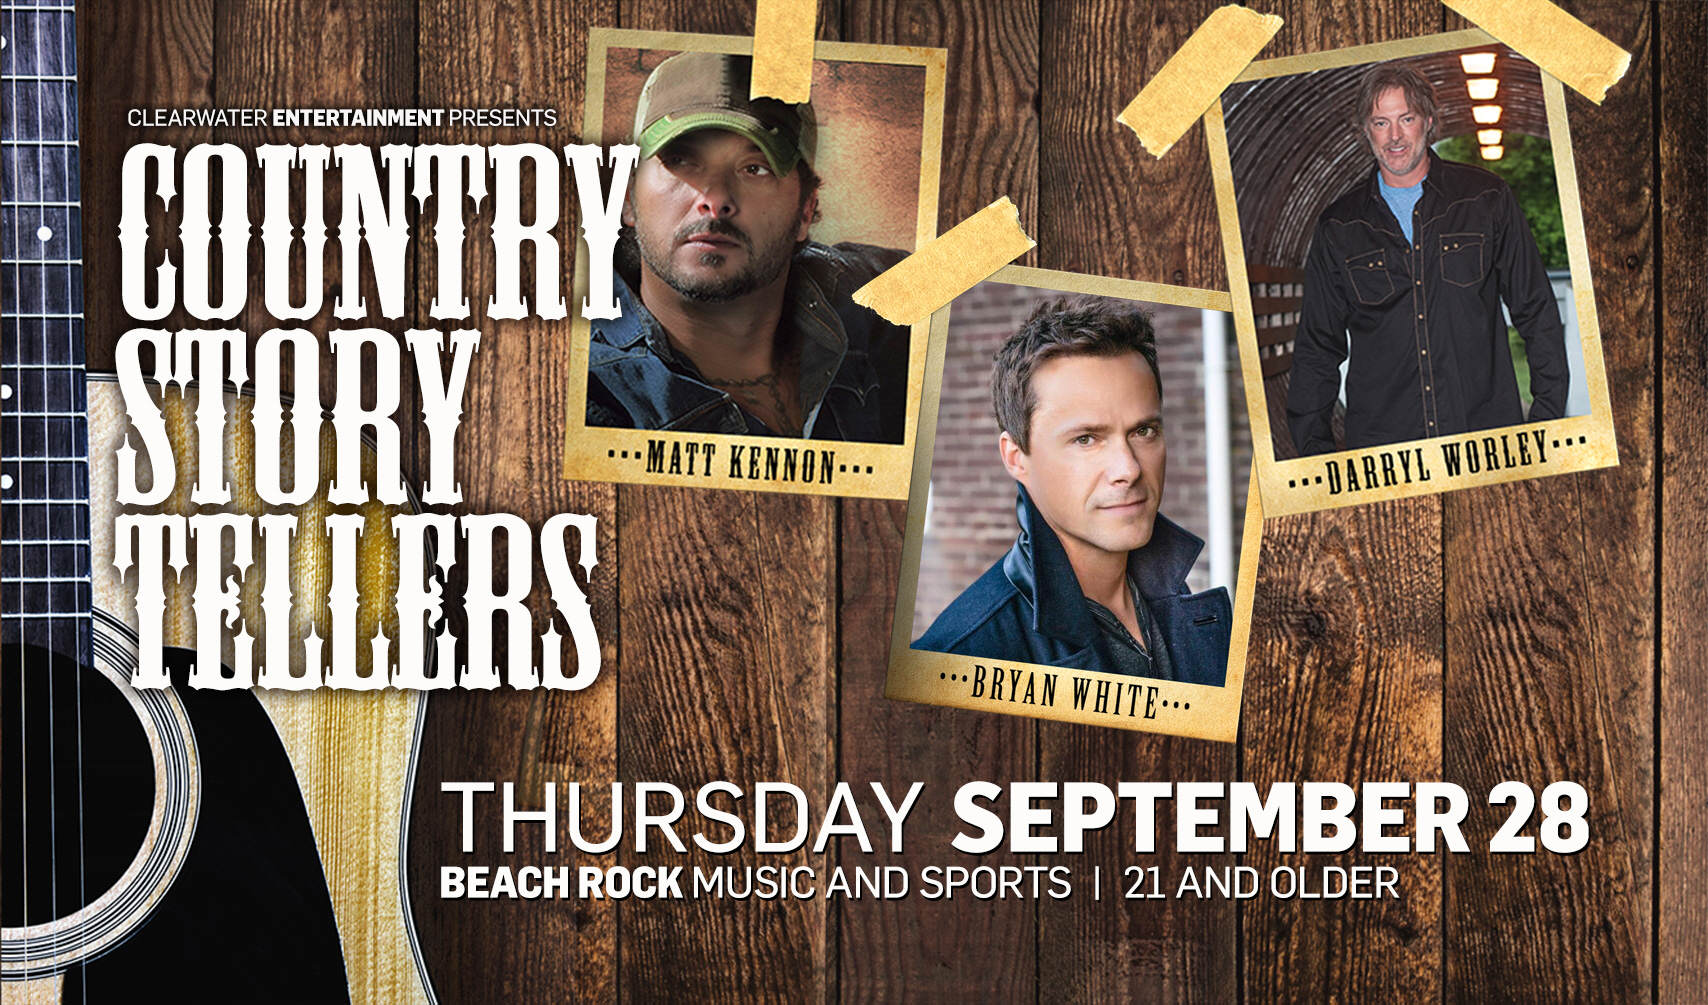 Country Story Tellers Rev3 Clearwater Casino Resort